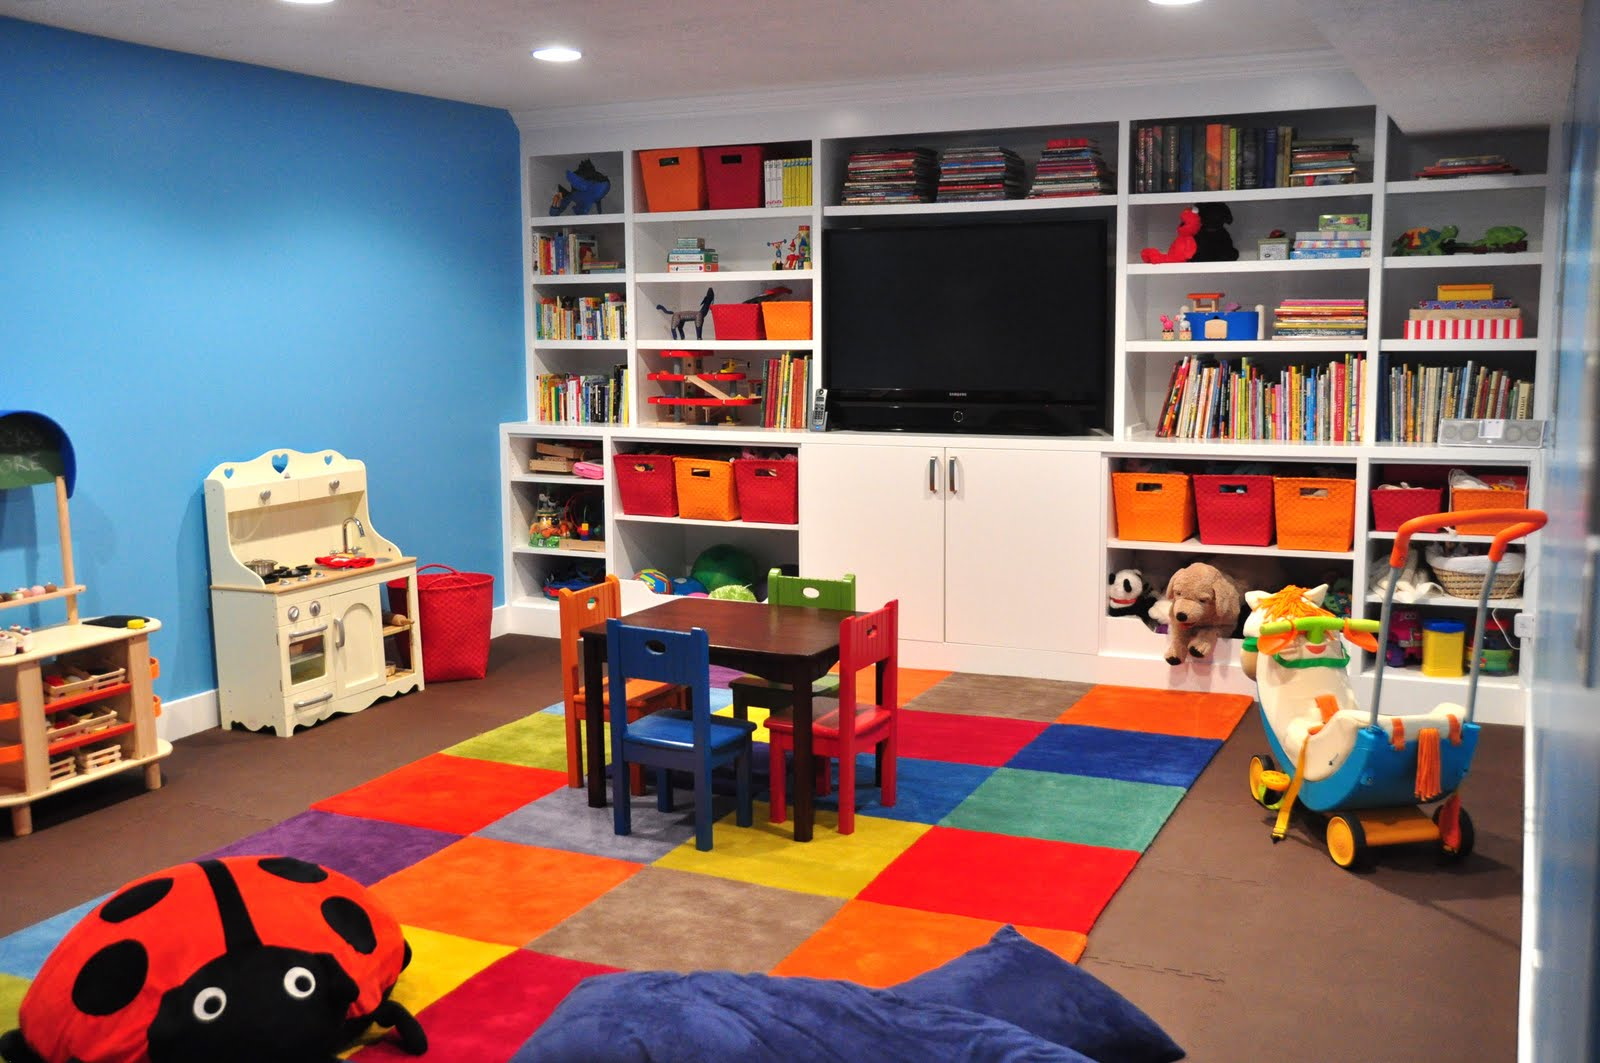 Basement Ideas For Kids A Basement Playroom For Kids Making The Most Of Your Space